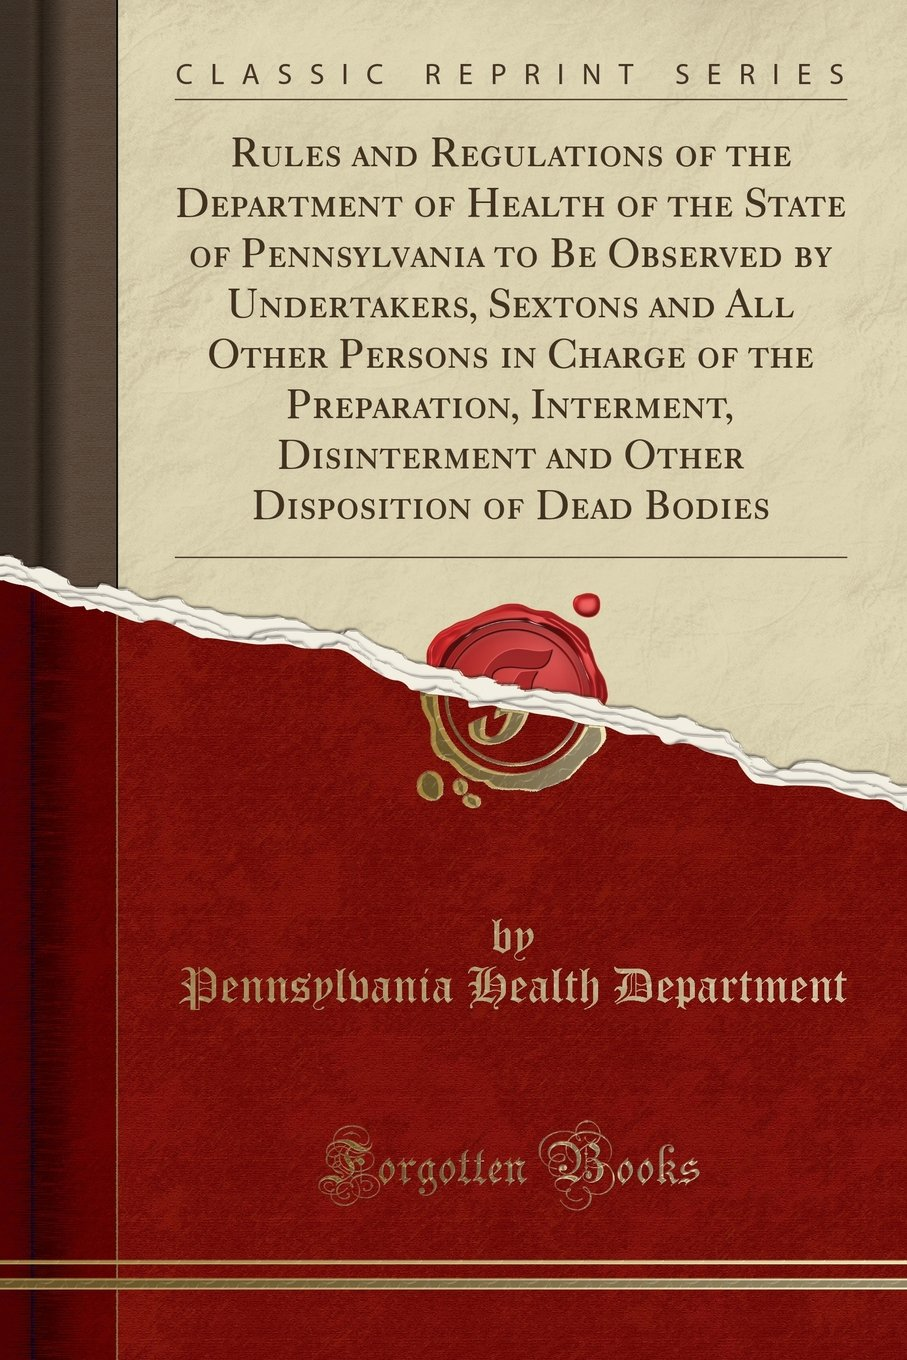 Download Rules and Regulations of the Department of Health of the State of Pennsylvania to Be Observed by Undertakers, Sextons and All Other Persons in Charge ... Disposition of Dead Bodies (Classic Reprint) ebook